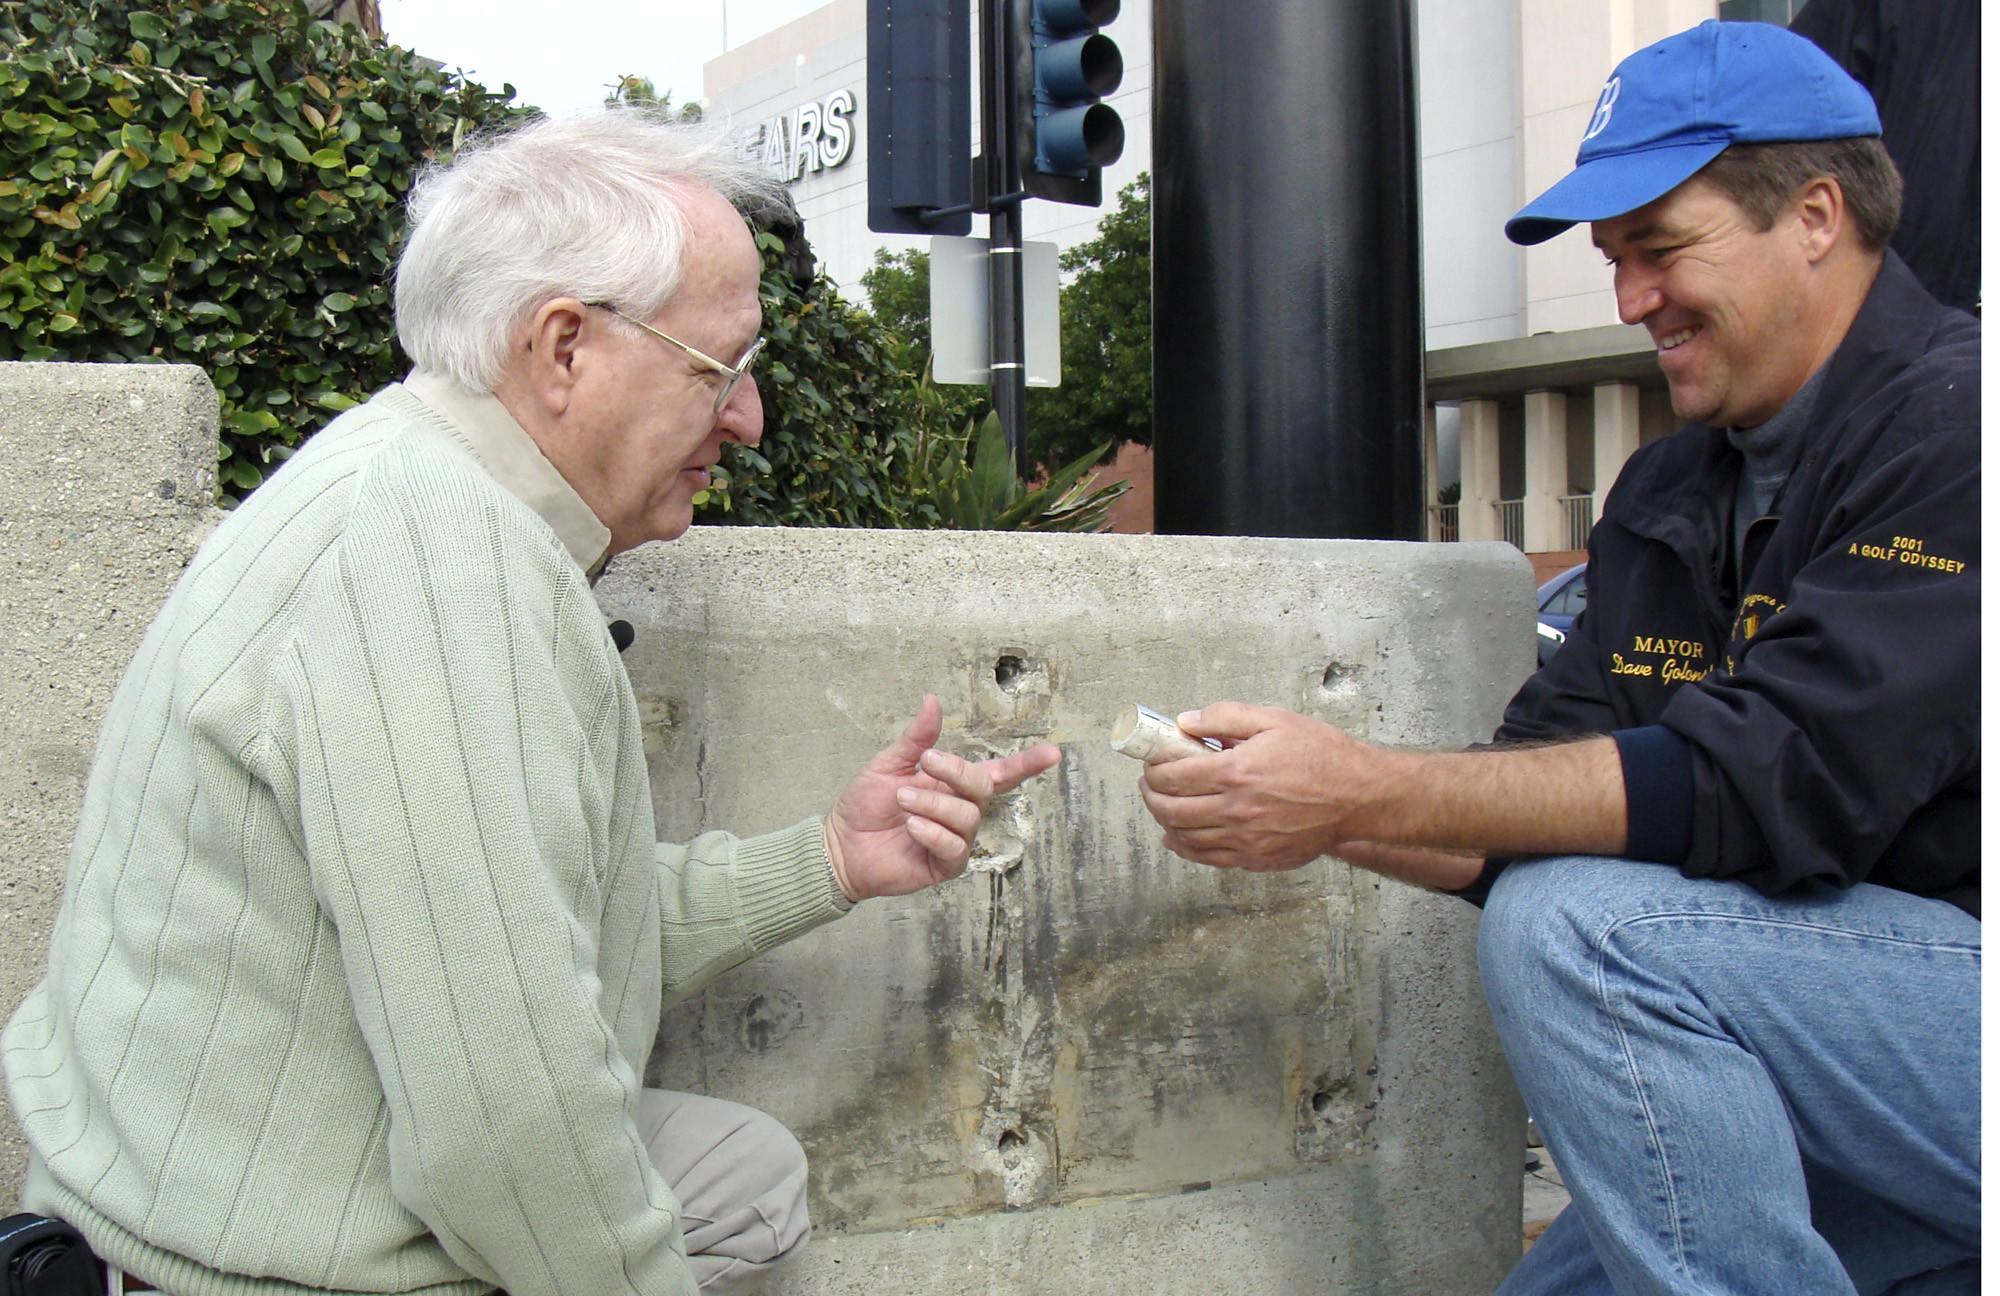 Lifelong Burbank resident Stan Lynch passed away Jan. 3 at the age of 68. He is pictured here with former mayor Dave Golonski holding a time capsule that was placed in the Magnolia St. bridge in 1959. Lynch was present for the capsule's original placement in the bridge.